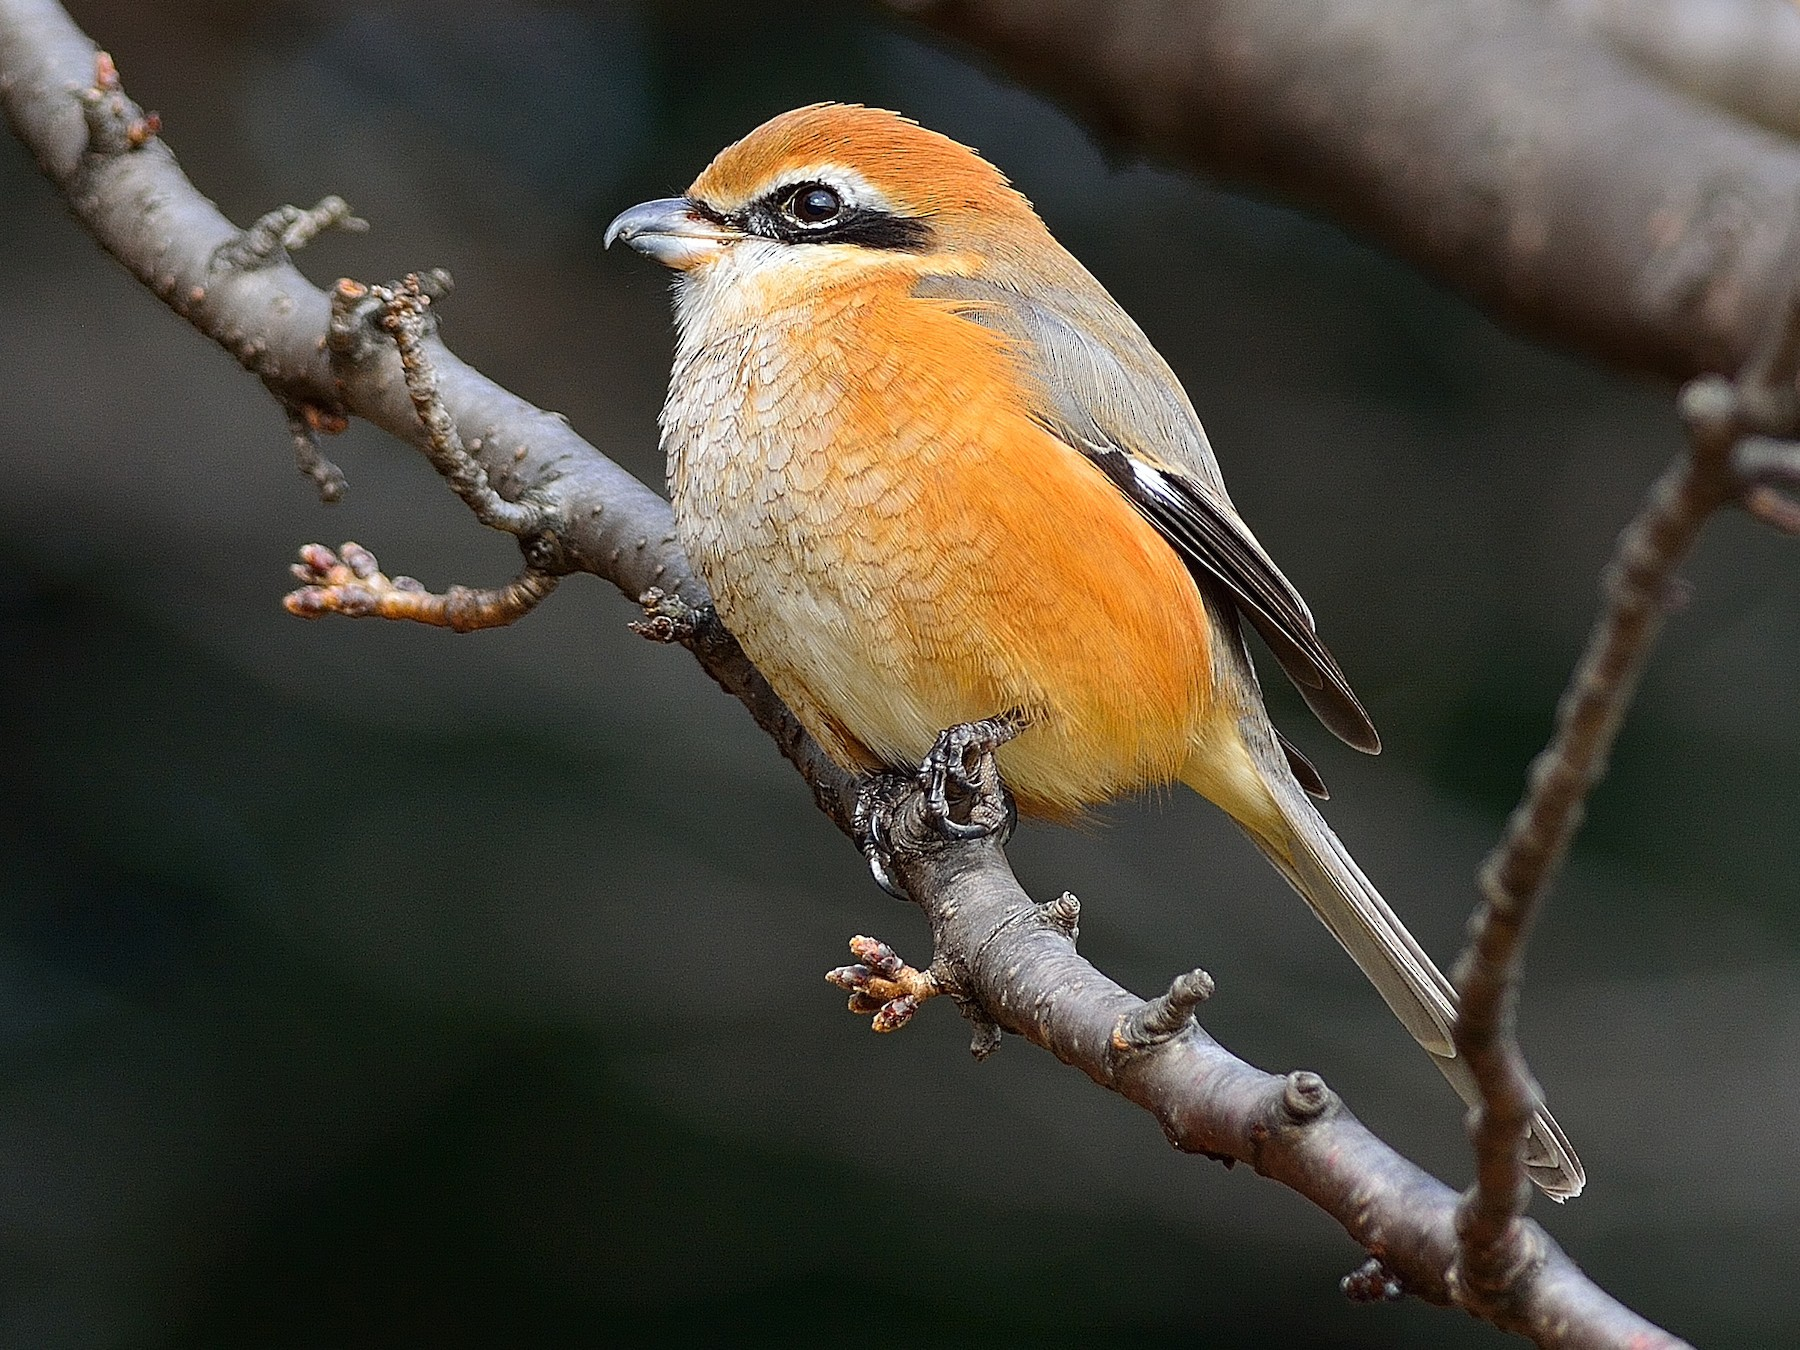 Bull-headed Shrike - Wbird Tsai